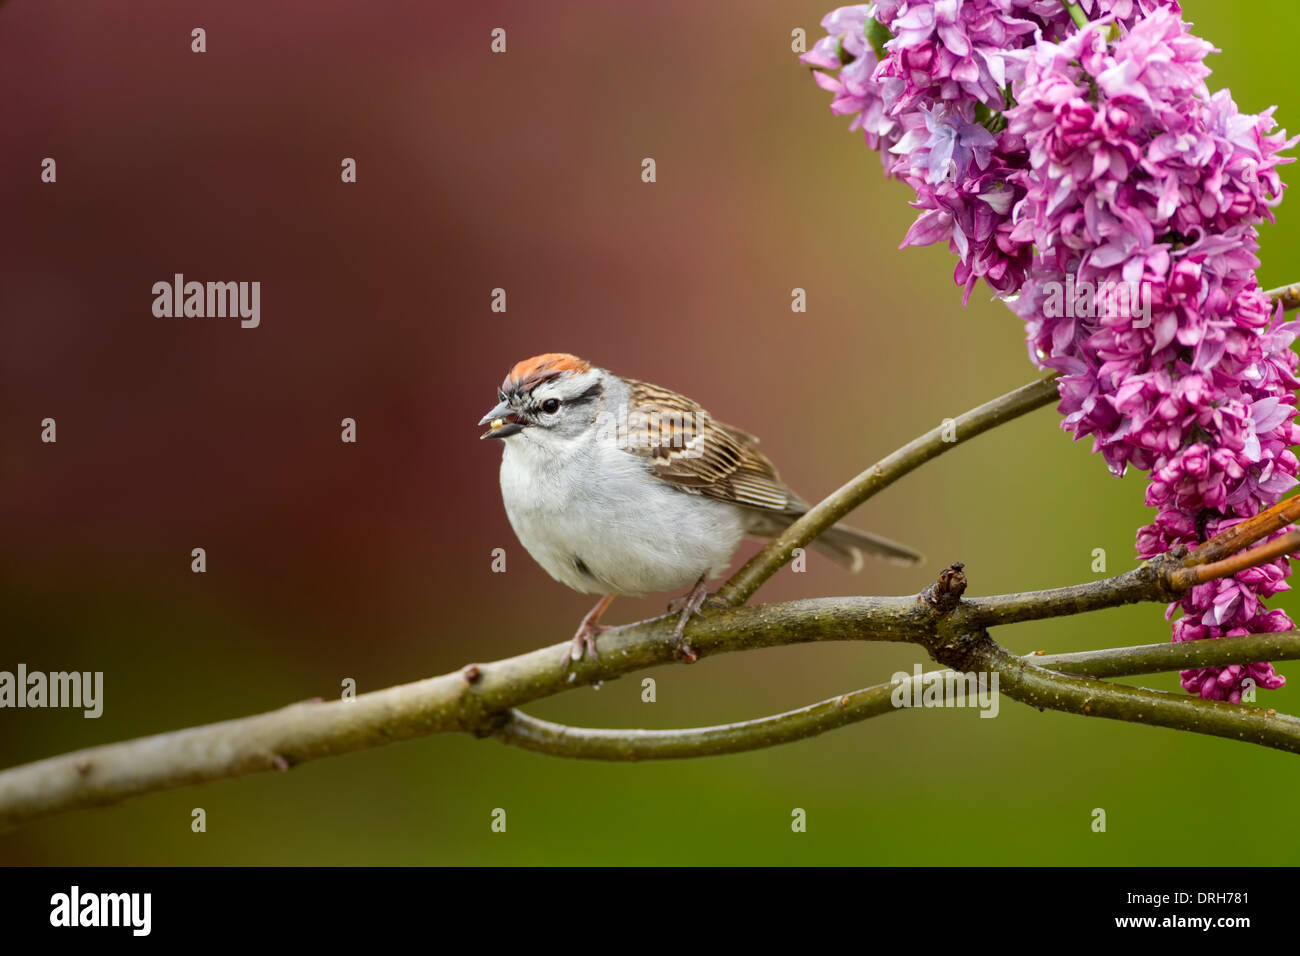 Chipping Sparrow with seed in its mouth with butterfly bush - Stock Image